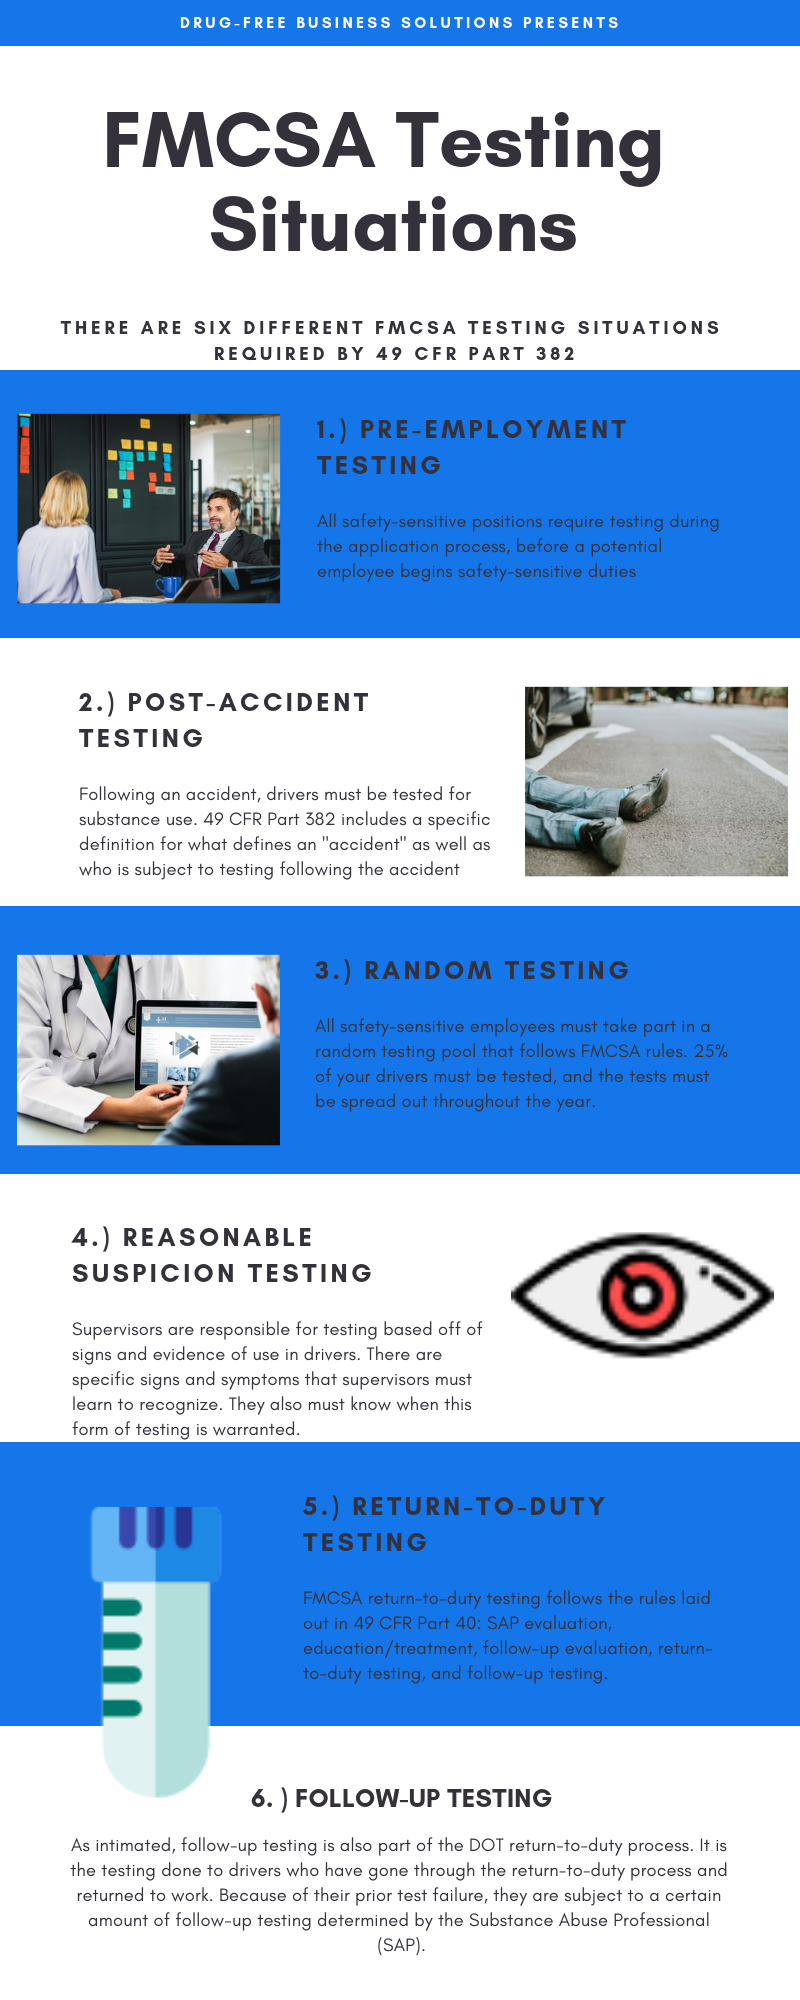 A visual summary of the six FMCSA testing situations as described in 49 CFR Part 382